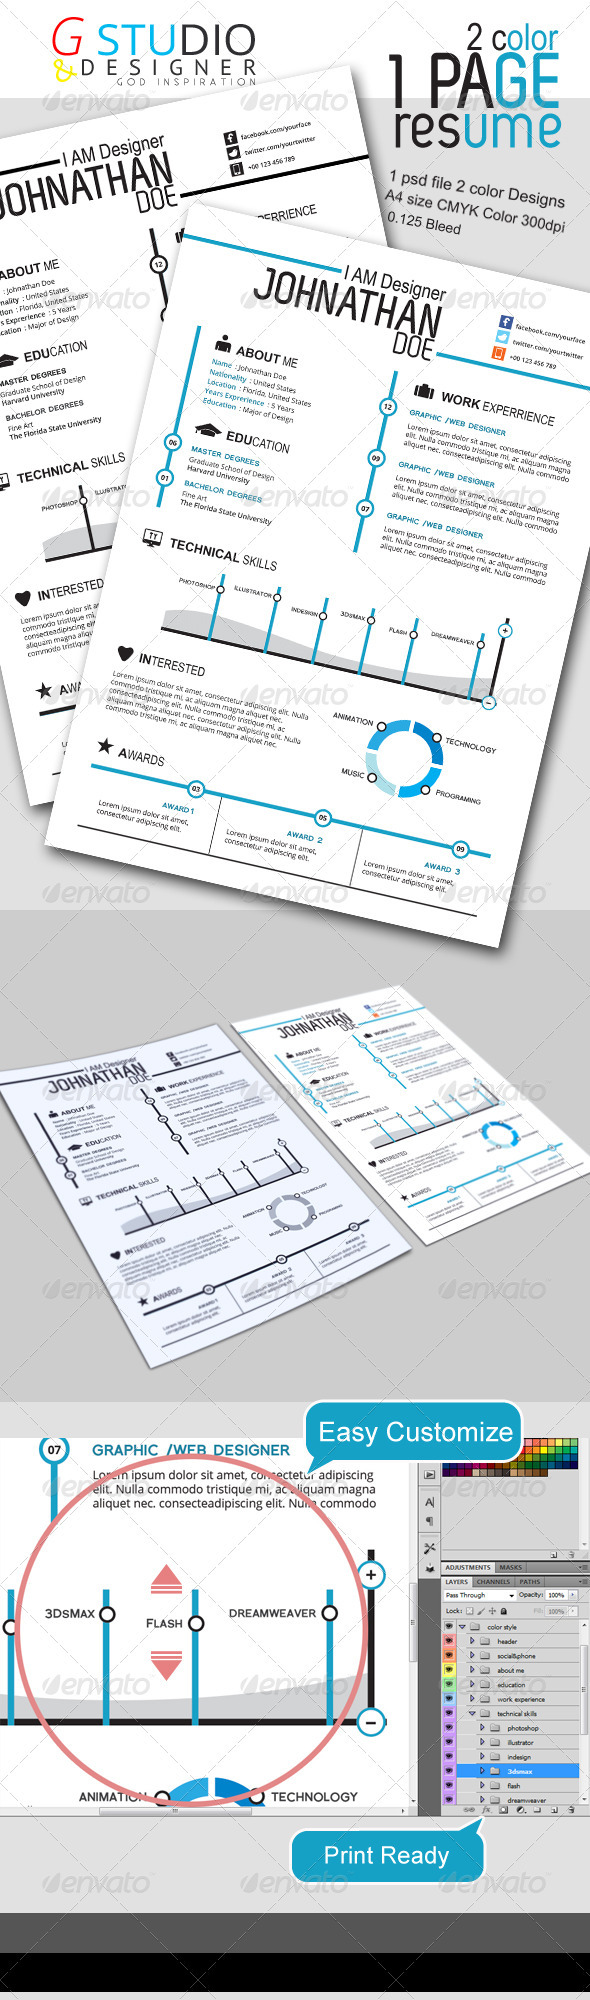 Gstudio-2 Color One Page Resume - Resumes Stationery